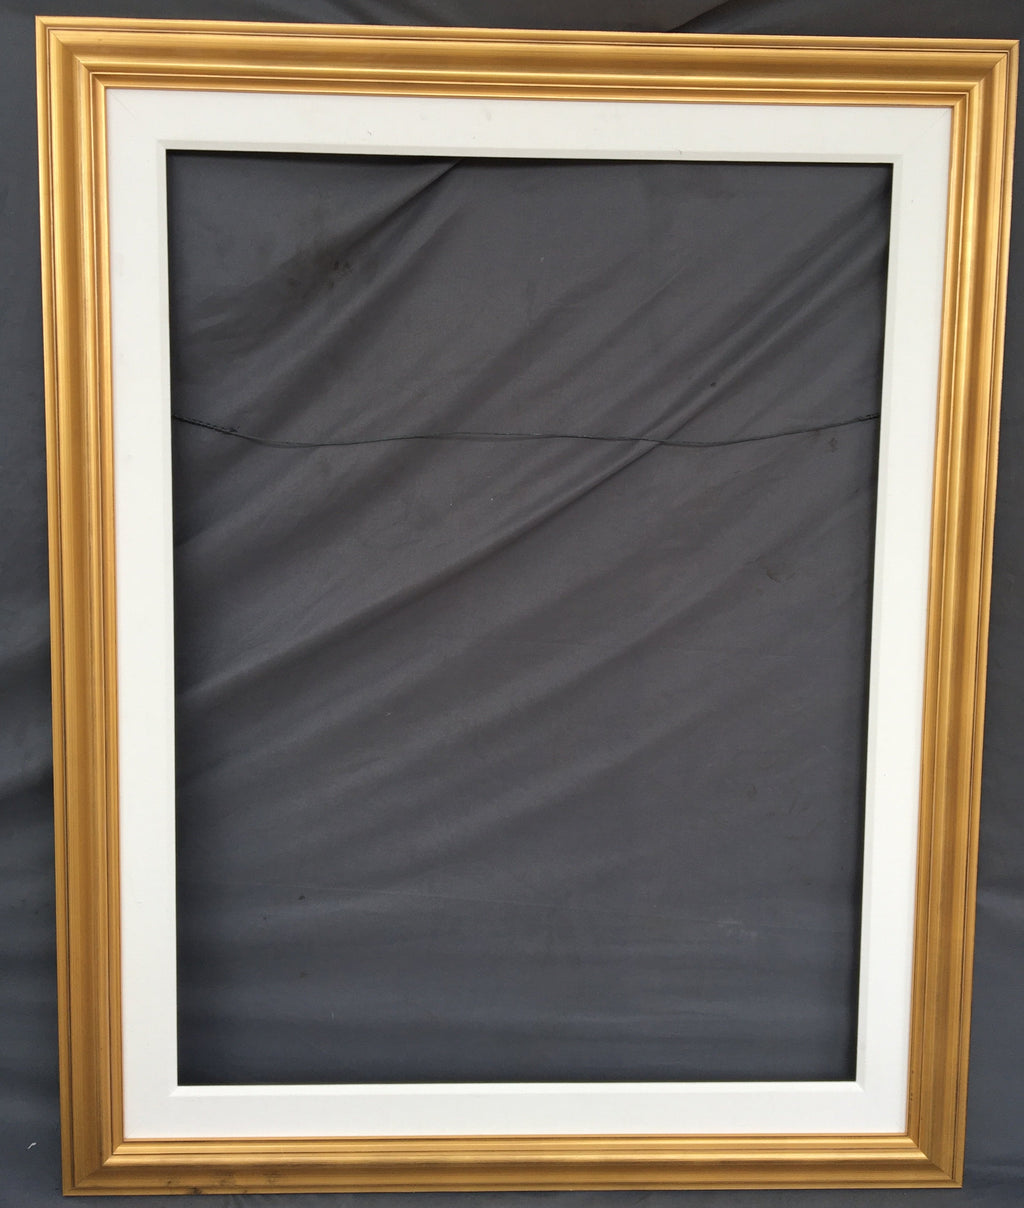 LARGE GOLD FRAME WITH THICK WHITE LINER